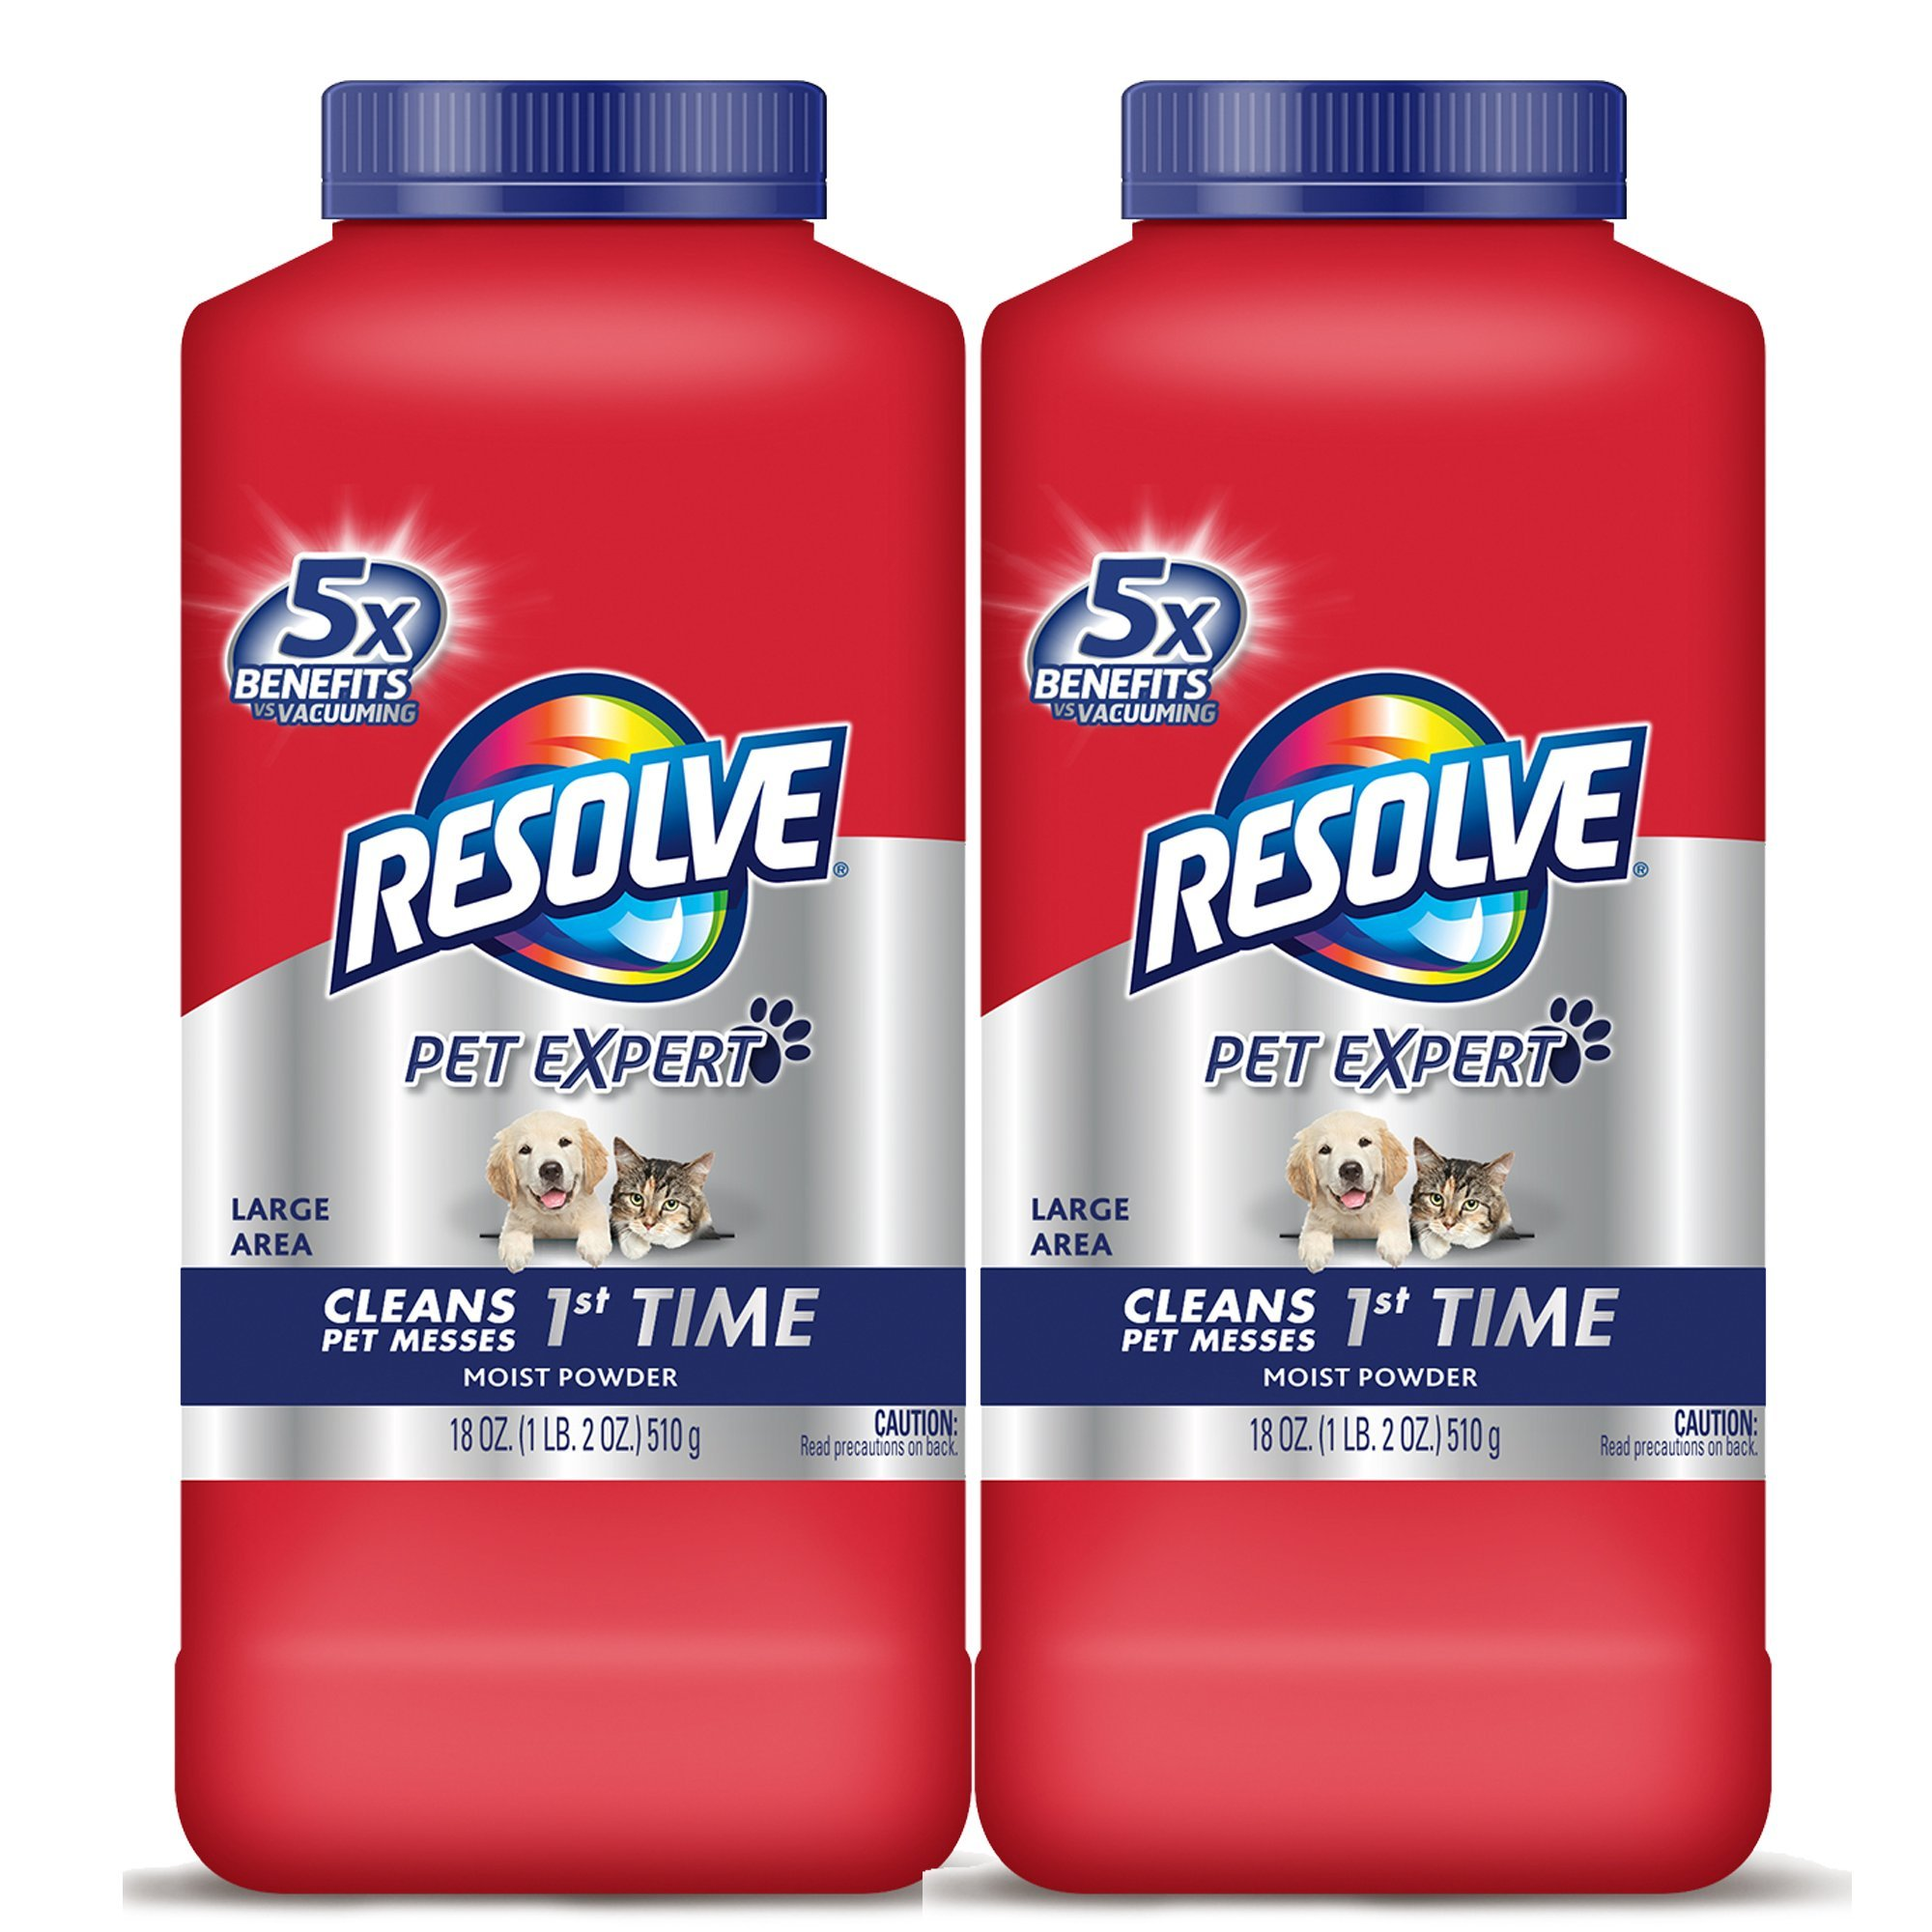 Resolve Pet Carpet Cleaner Powder, For Dirt & Stain Removal, 18 oz Bottle, 2-Pack by Resolve (Image #1)